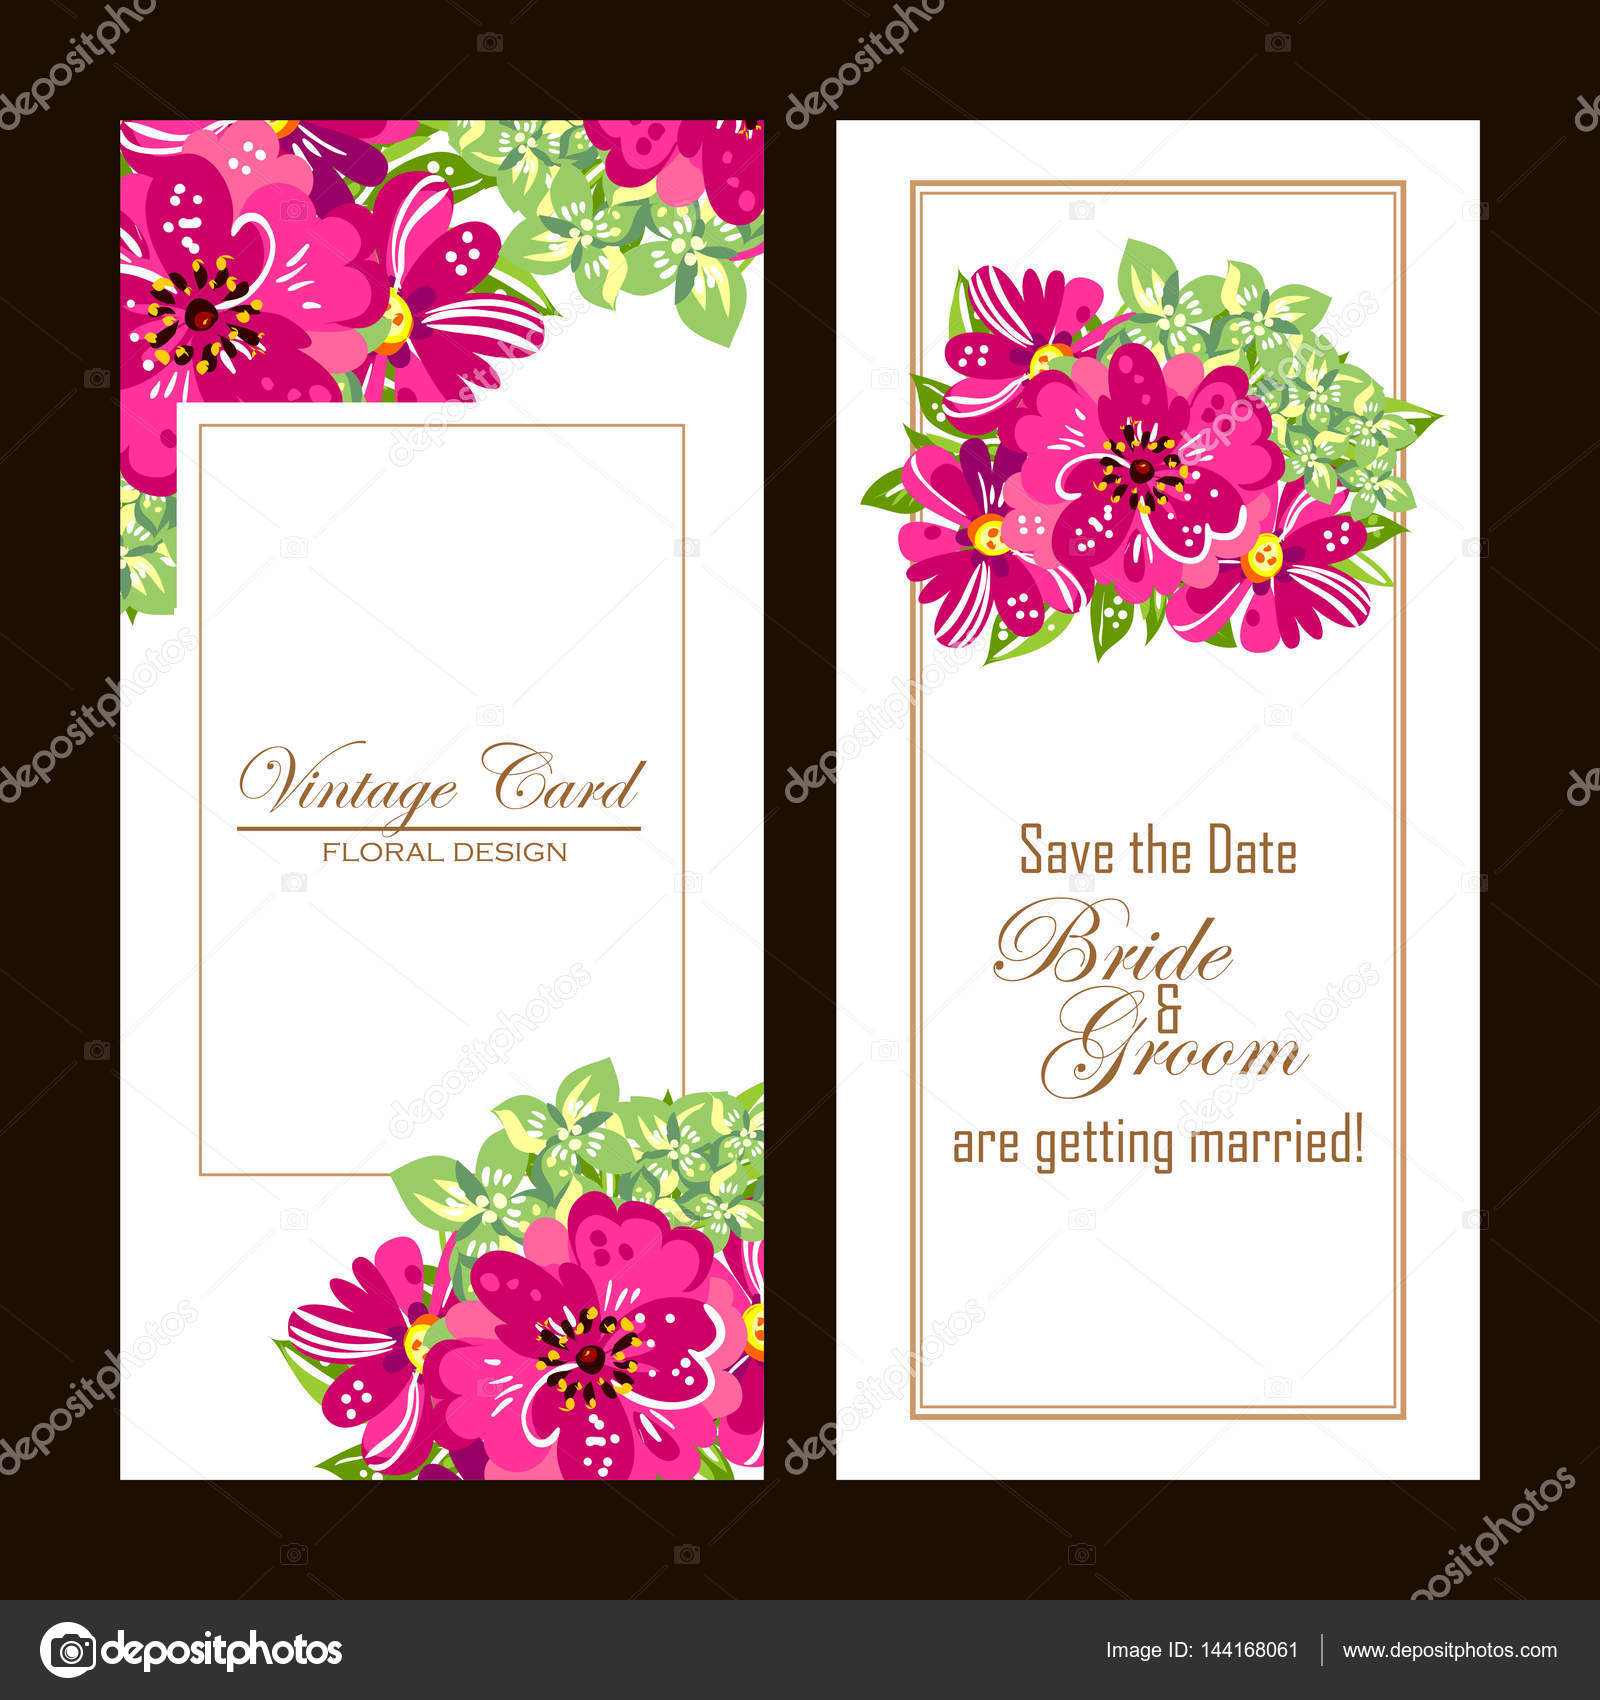 Romantic invitation cards vetor de stock all about flowers romantic invitation cards wedding marriage bridal birthday valentines day vector illustration vetor por all about flowers stopboris Choice Image